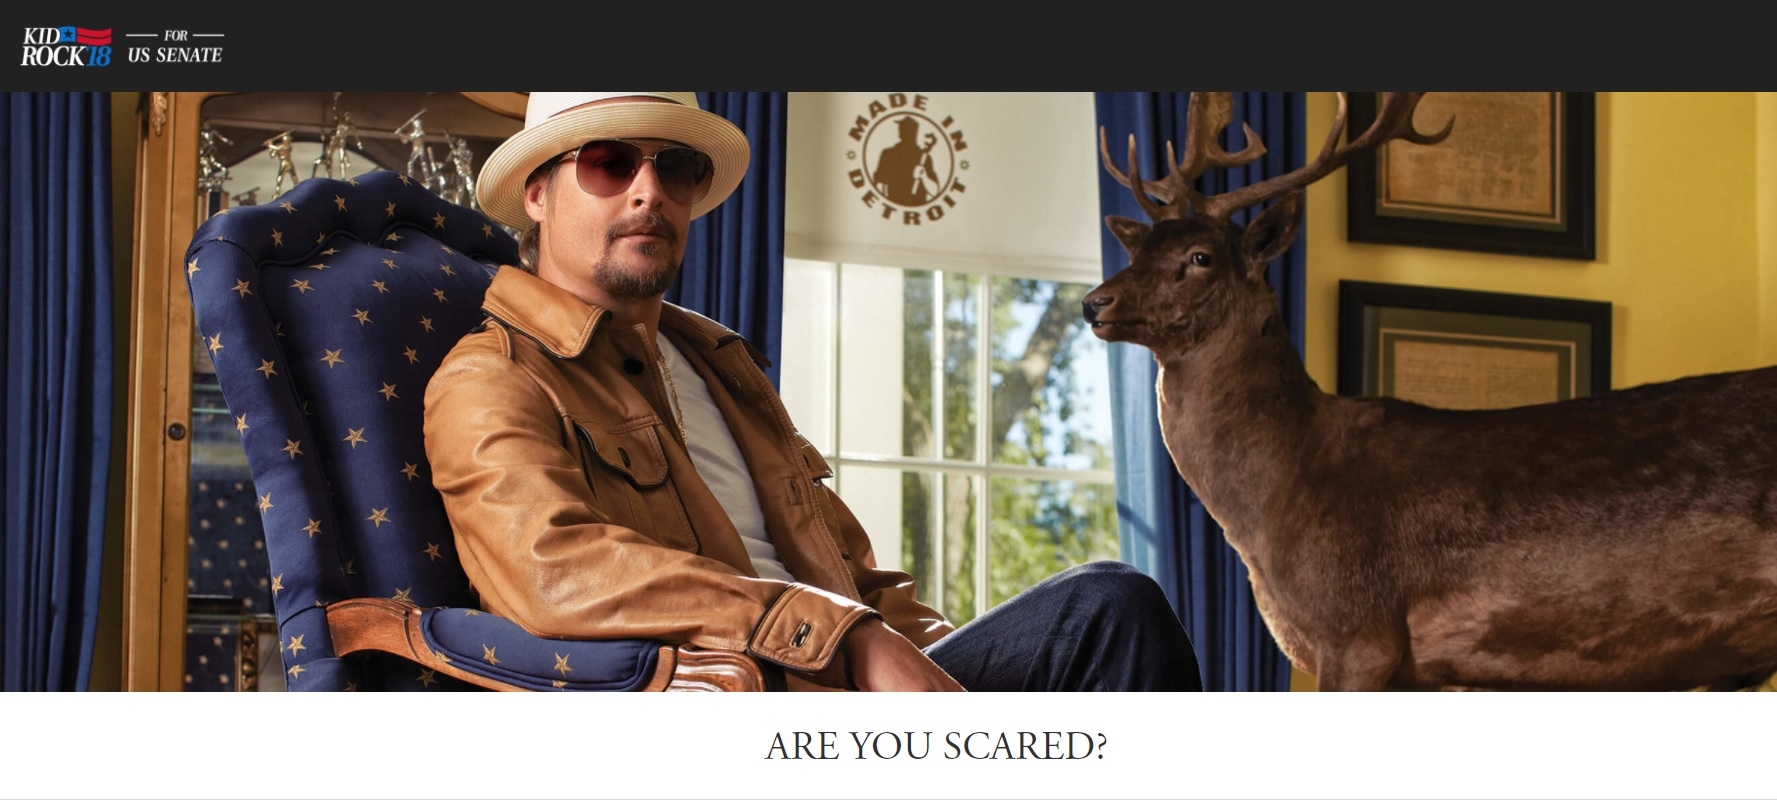 FILE image shows a screen-grab of Kid Rock's official 2018 campaign site. Kid Rock, formally Robert James Ritchie, announced he would run as a Republican for U.S. Senate to represent Michigan. (Photo credit: KidRockforSenate.com)